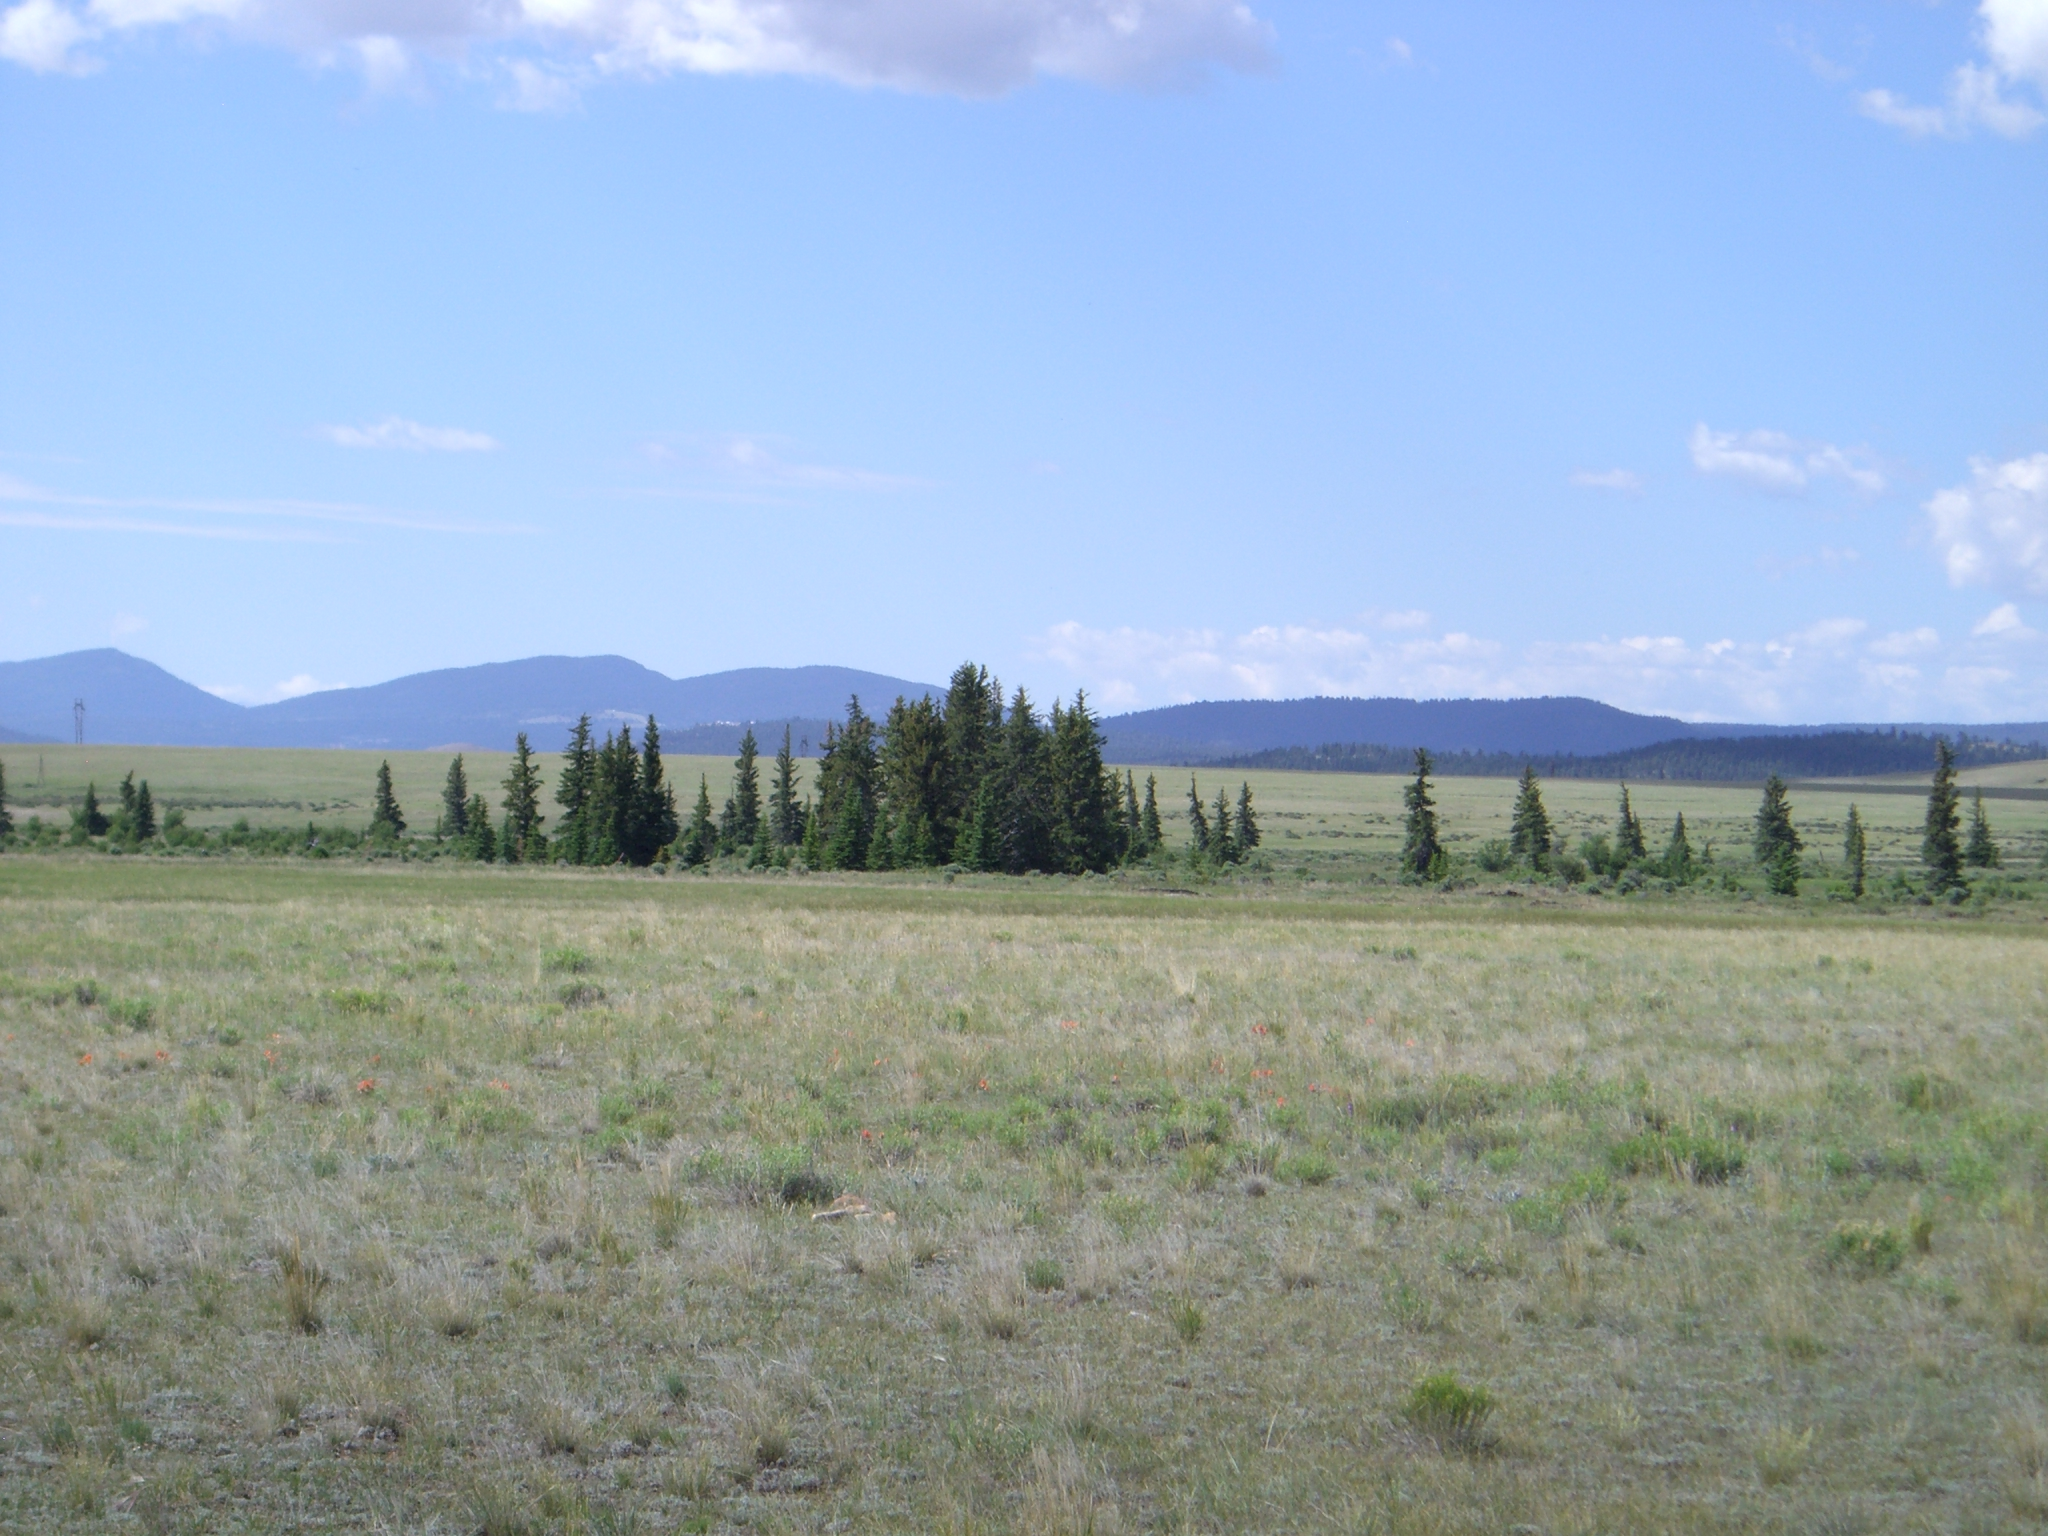 285 A Strange Cluster Of Spruce Trees Appearspletely Out Place Amidst The Short Grass Steppe South Parks Valley Floor